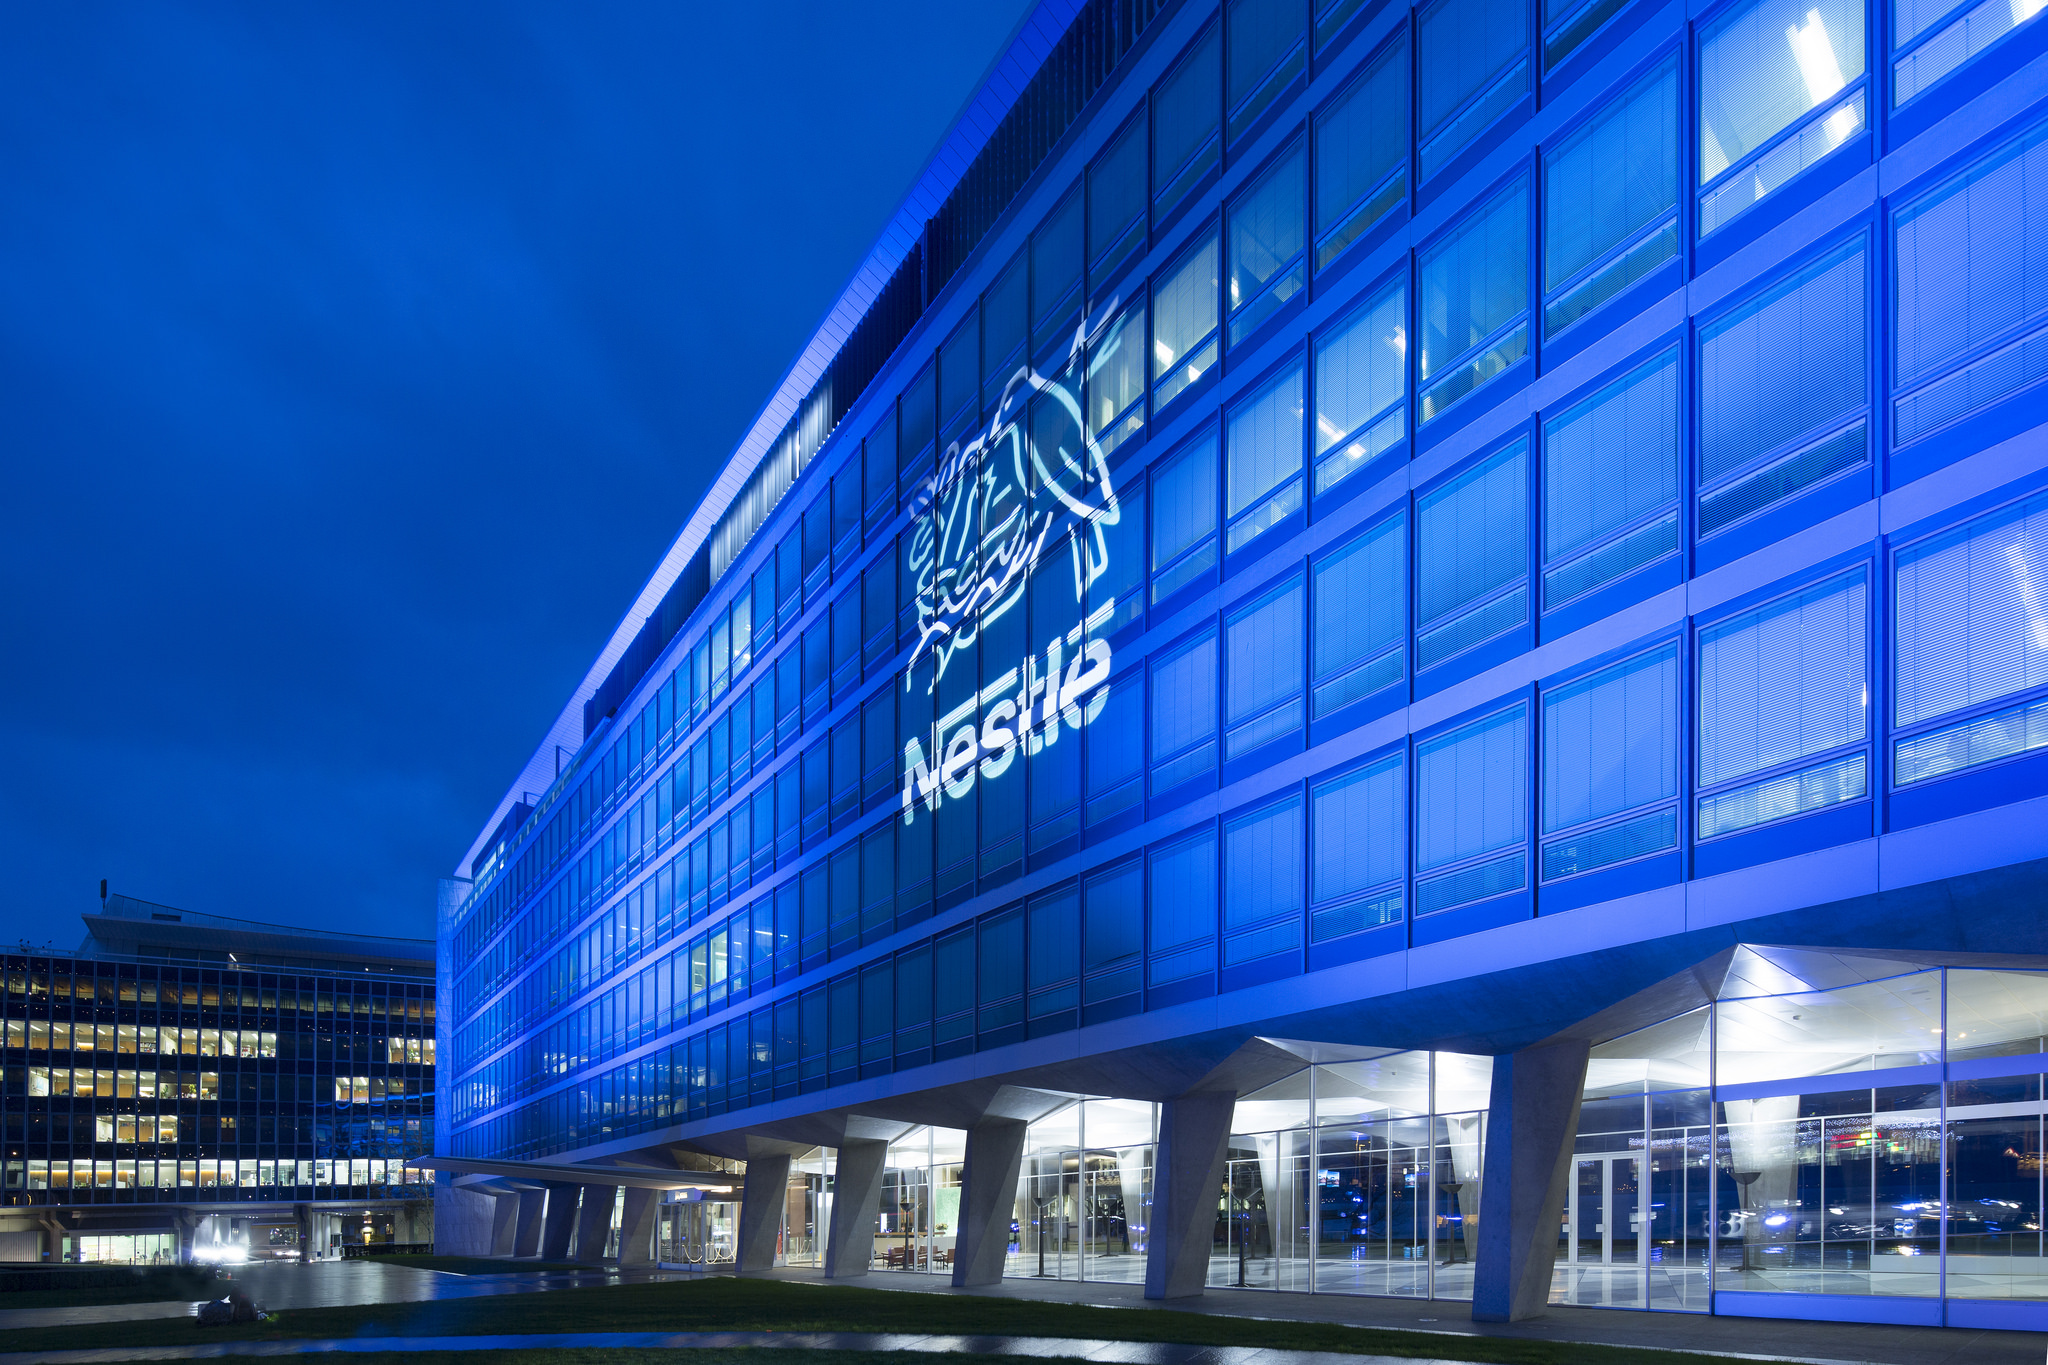 nestl eacute industry (posted on 02/08/16) smurfit kappa has won the european innovation recognition award from nestlé fibre packaging categories for the second consecutive year.